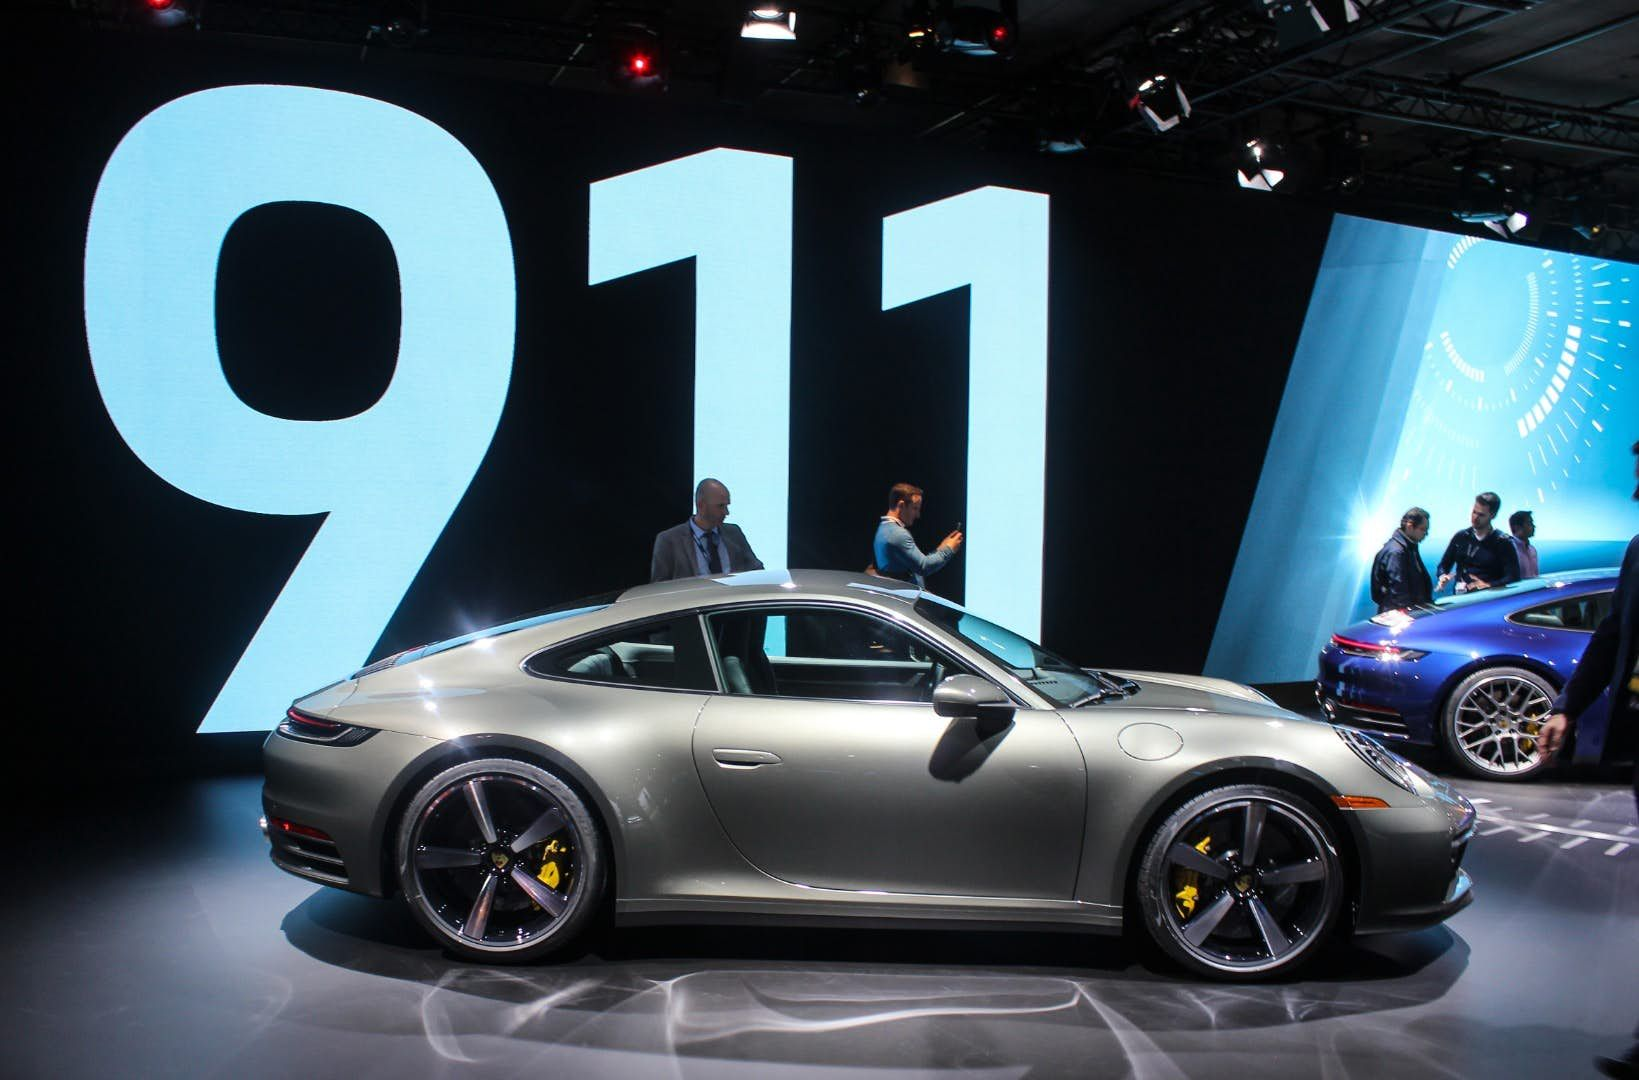 All focus on the new porsche also bmw  review exterior interior seater suv autogefuhl rh pinterest